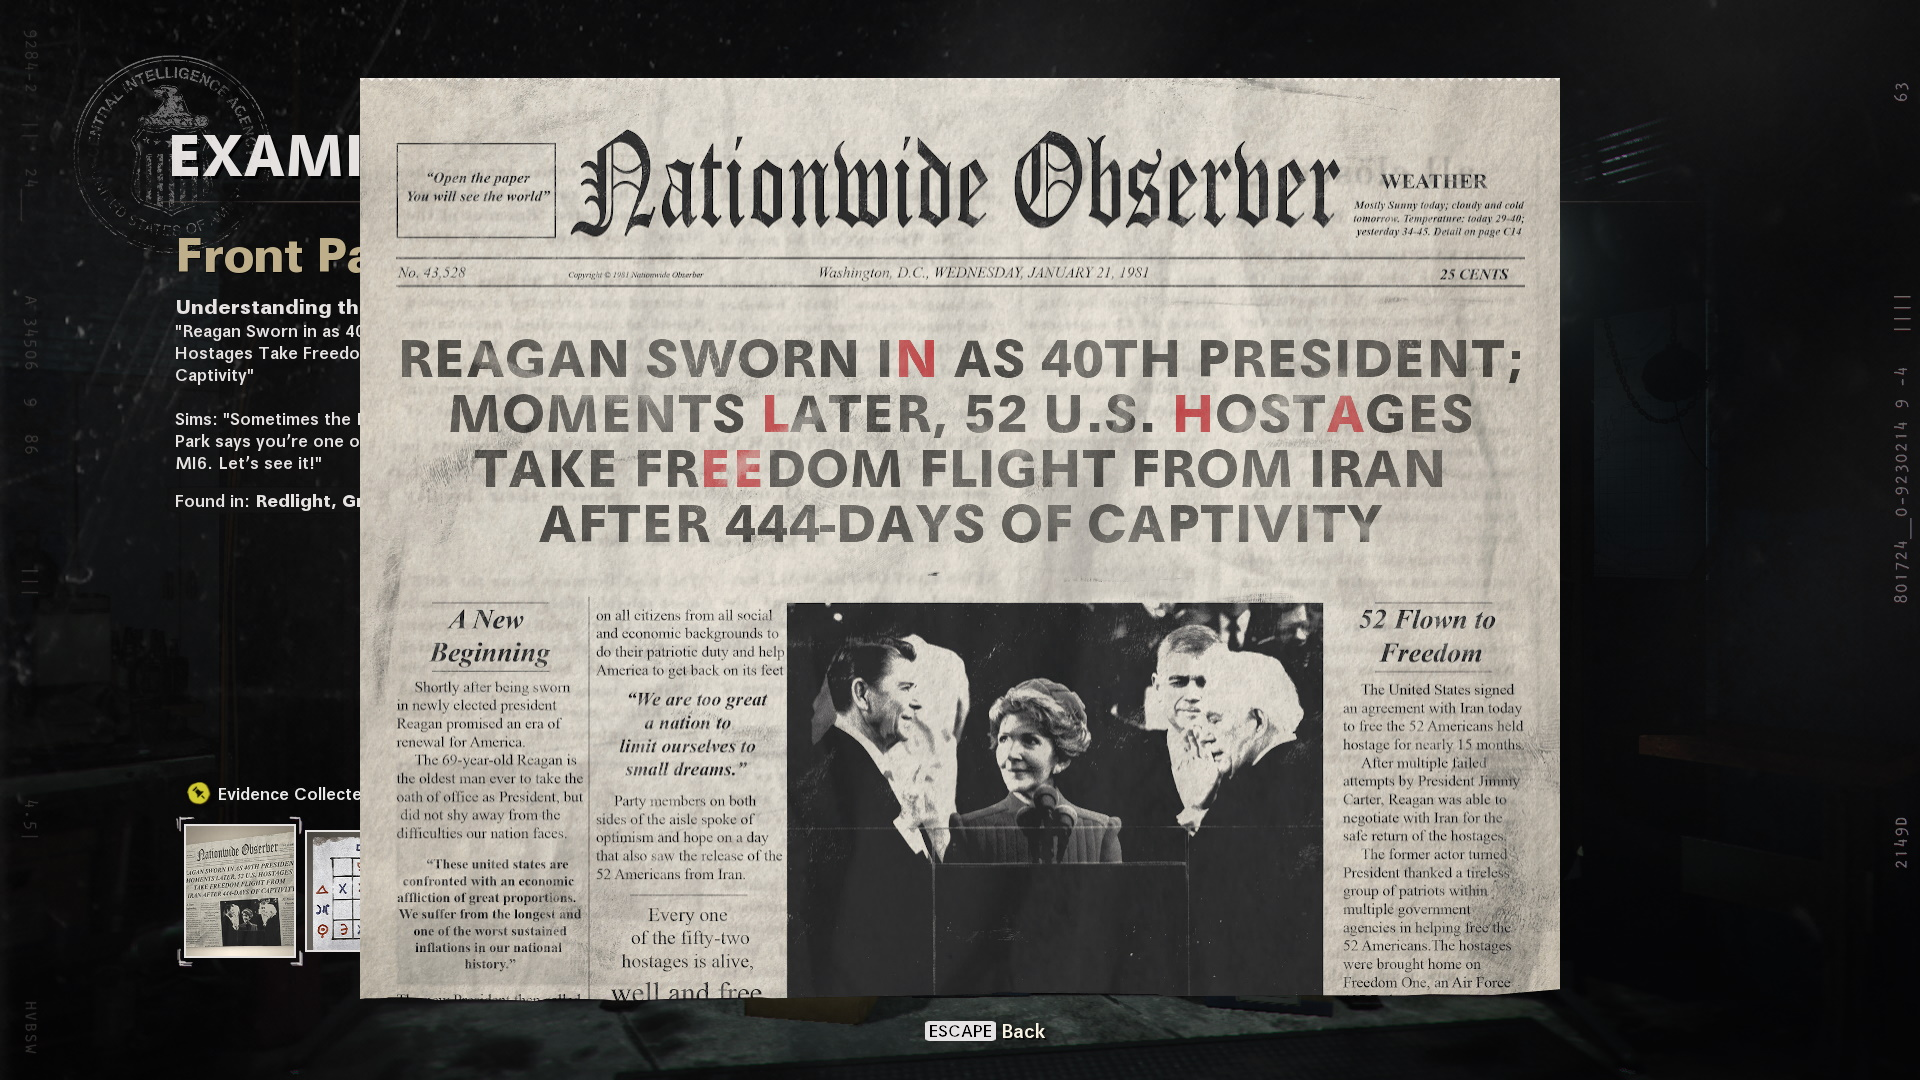 The headling of this newspaper reads: 'Reagan sworn in as 40th president; moments later, 52 US hostages take freedom flight from iran after 444-days of captivity'. Some letters are highlighted red.